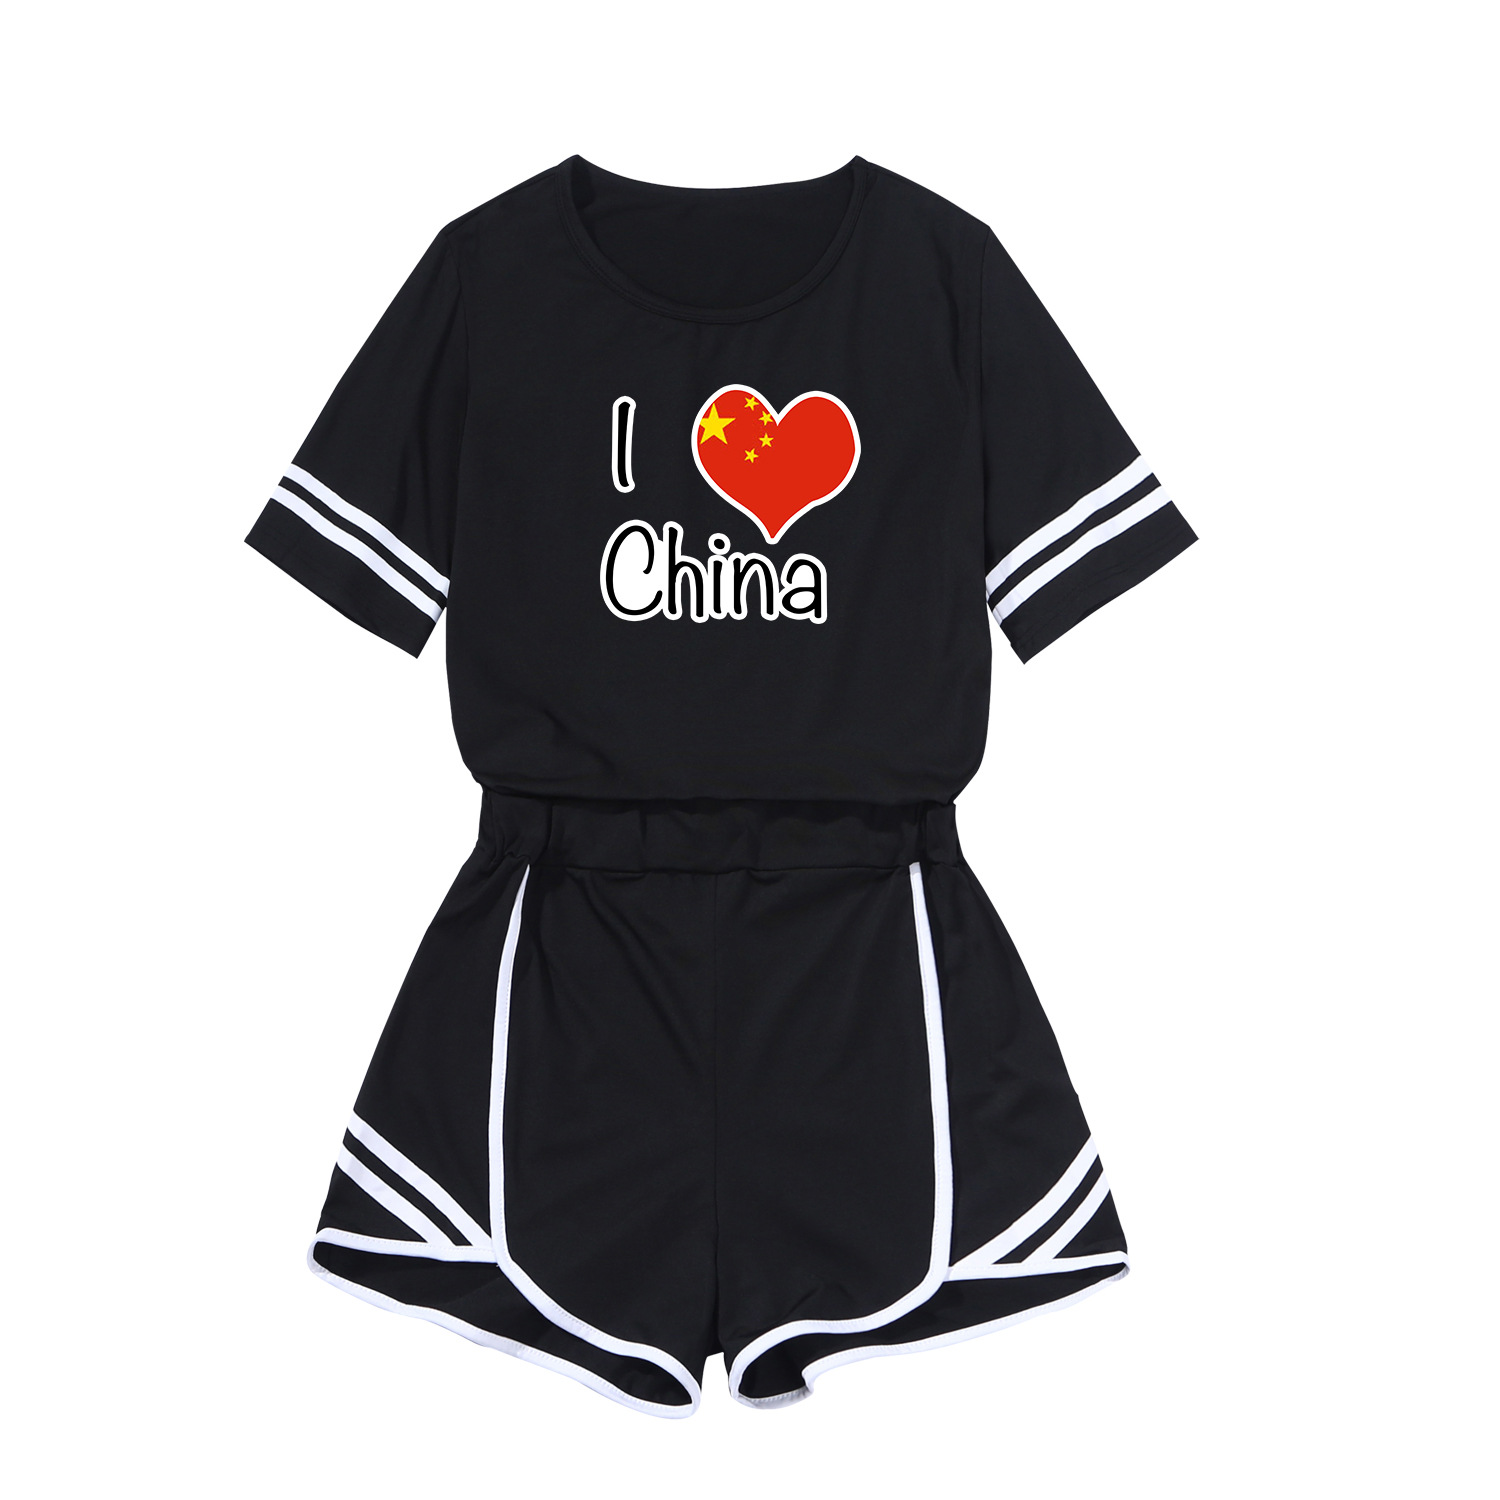 I LOVE Pattern WOMEN'S Dress Printed Short Skirt Fashion Leisure Suit Sports Set